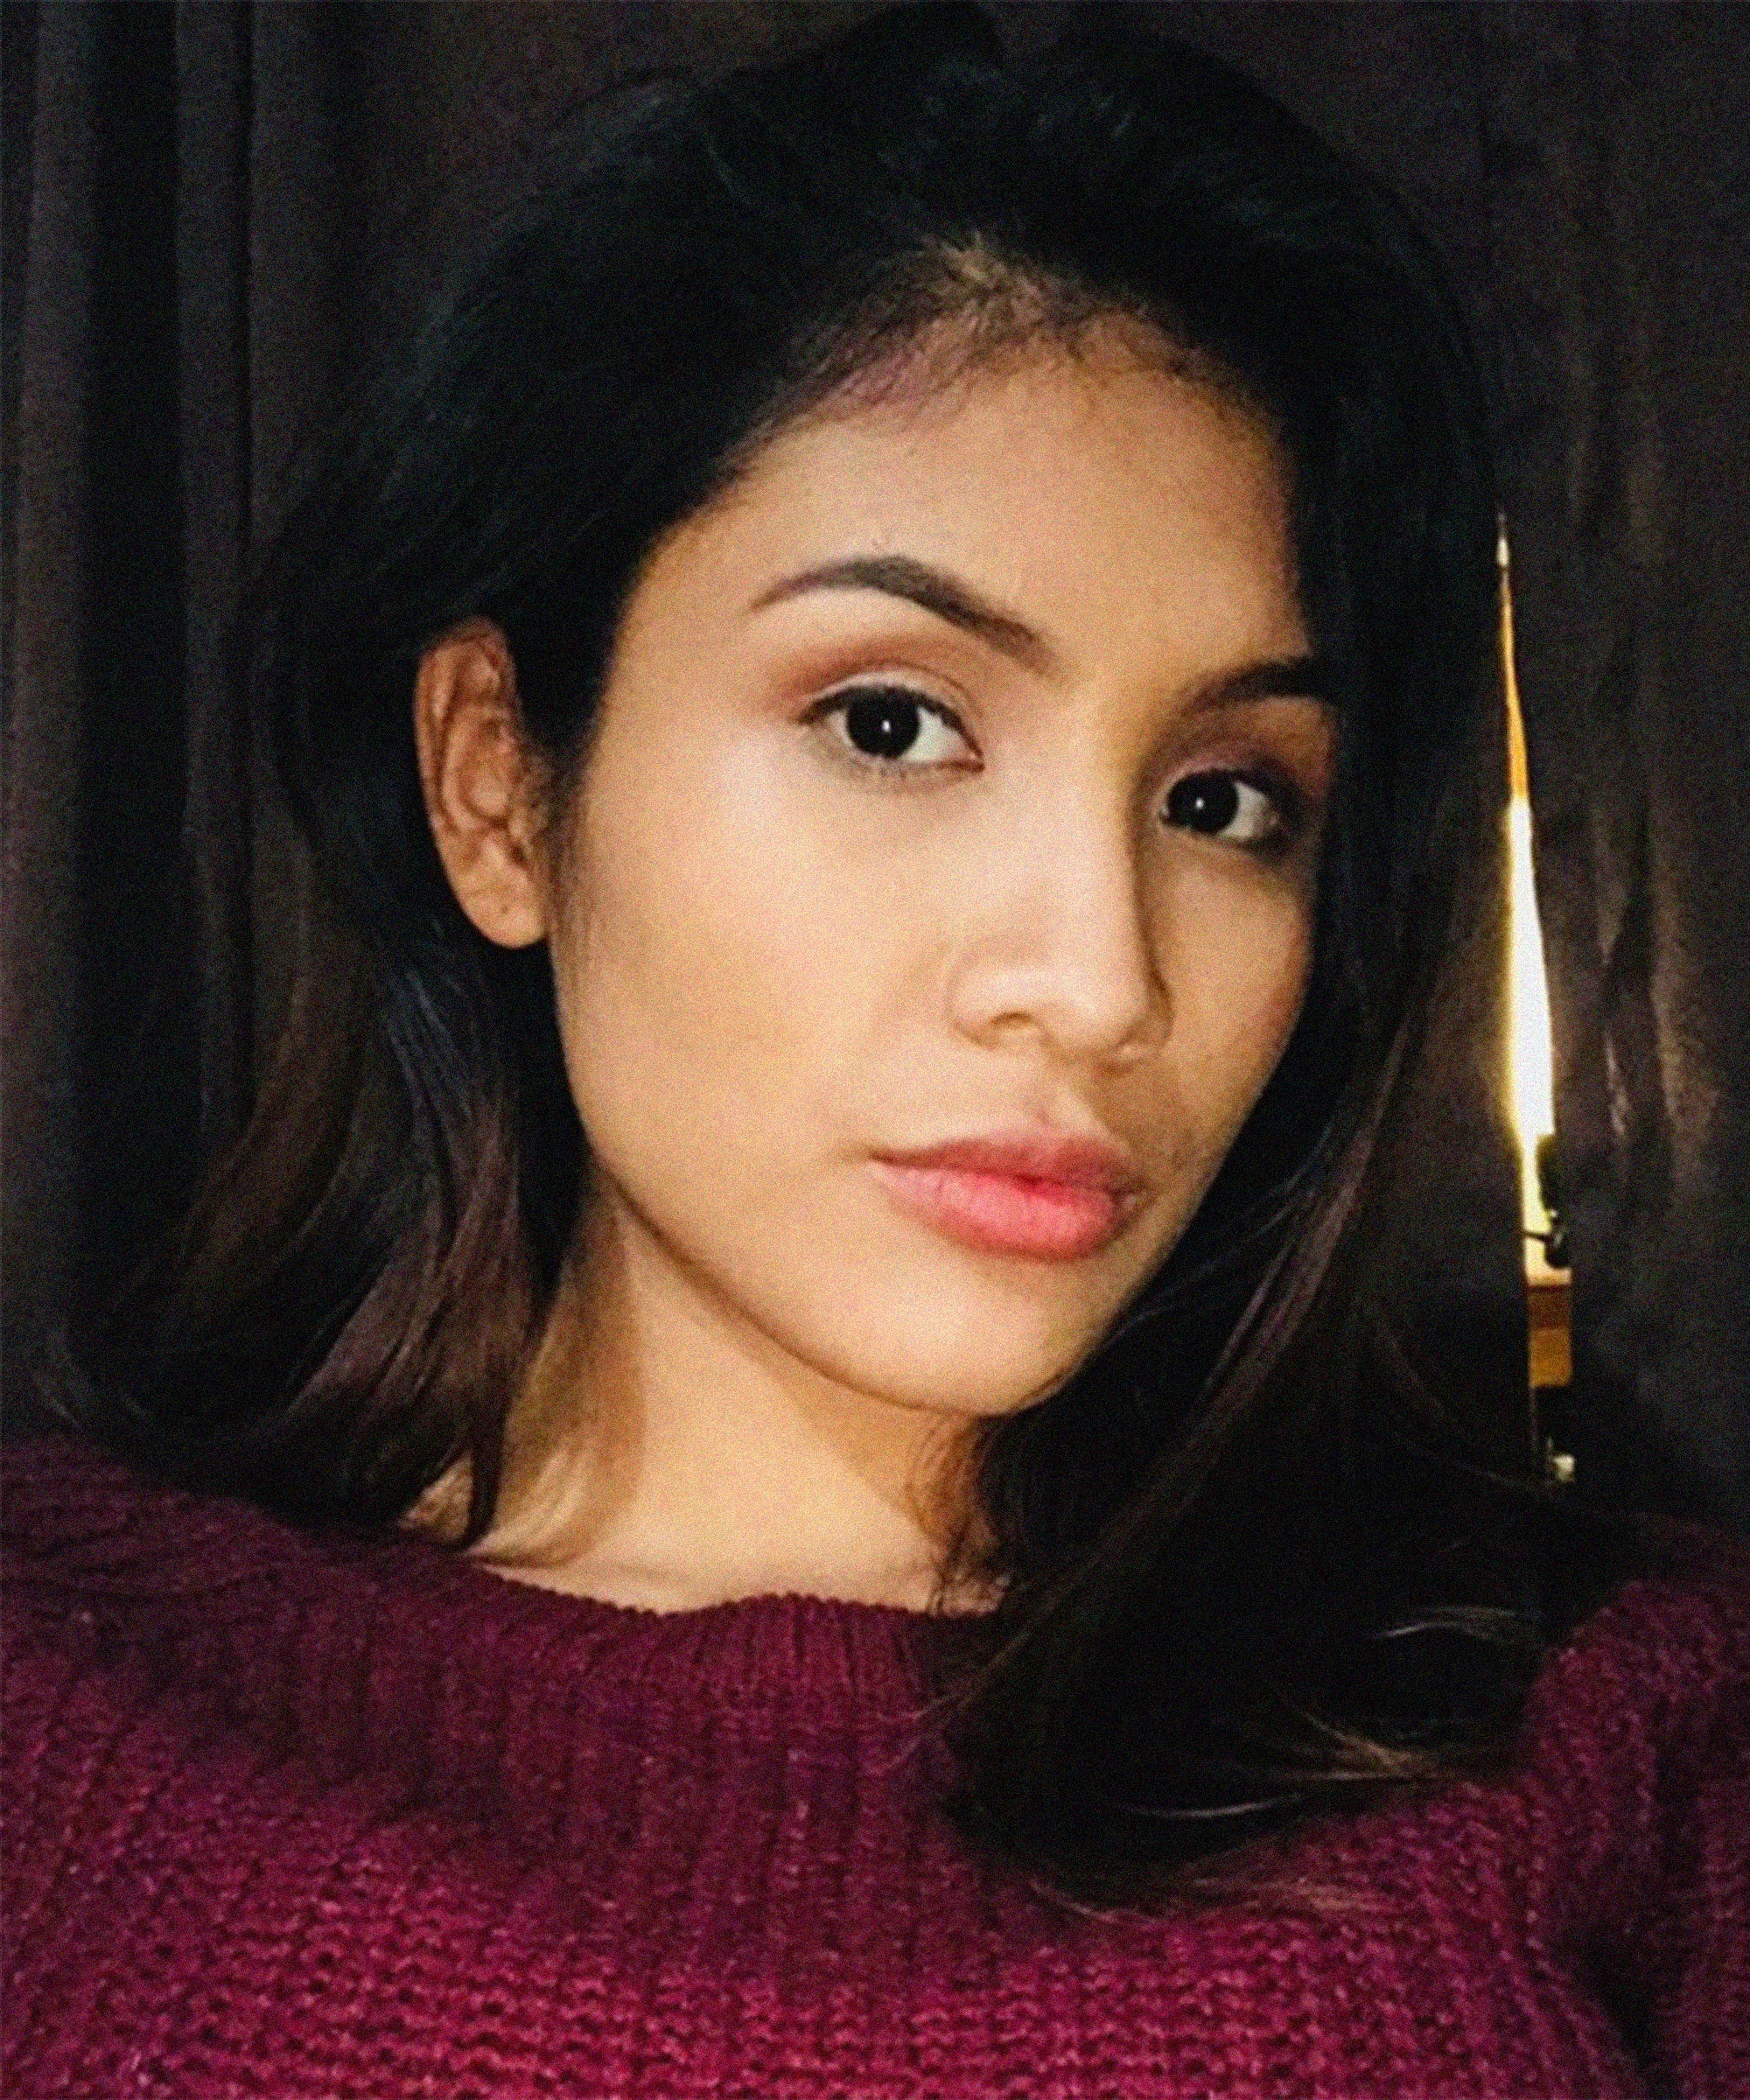 How Marlen Ochoa-Lopez Was Deceived By The Women Who Stole Her Unborn Baby